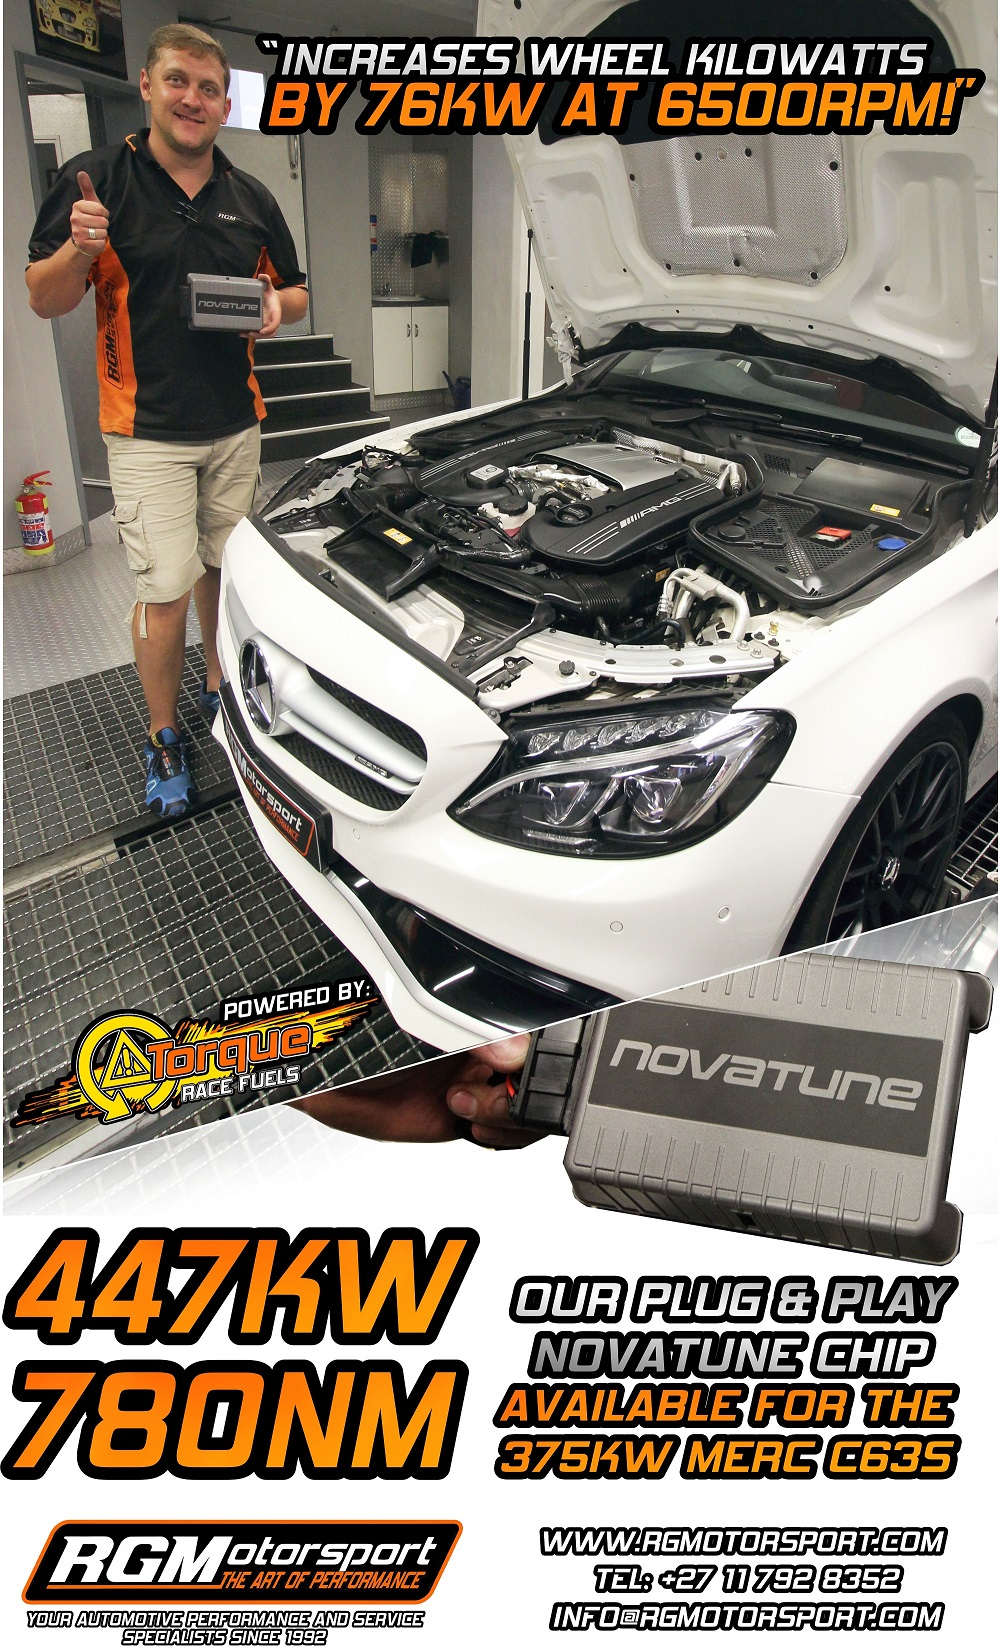 MERC C63 AMG NOVATUNE CHIP NOV 2016website size